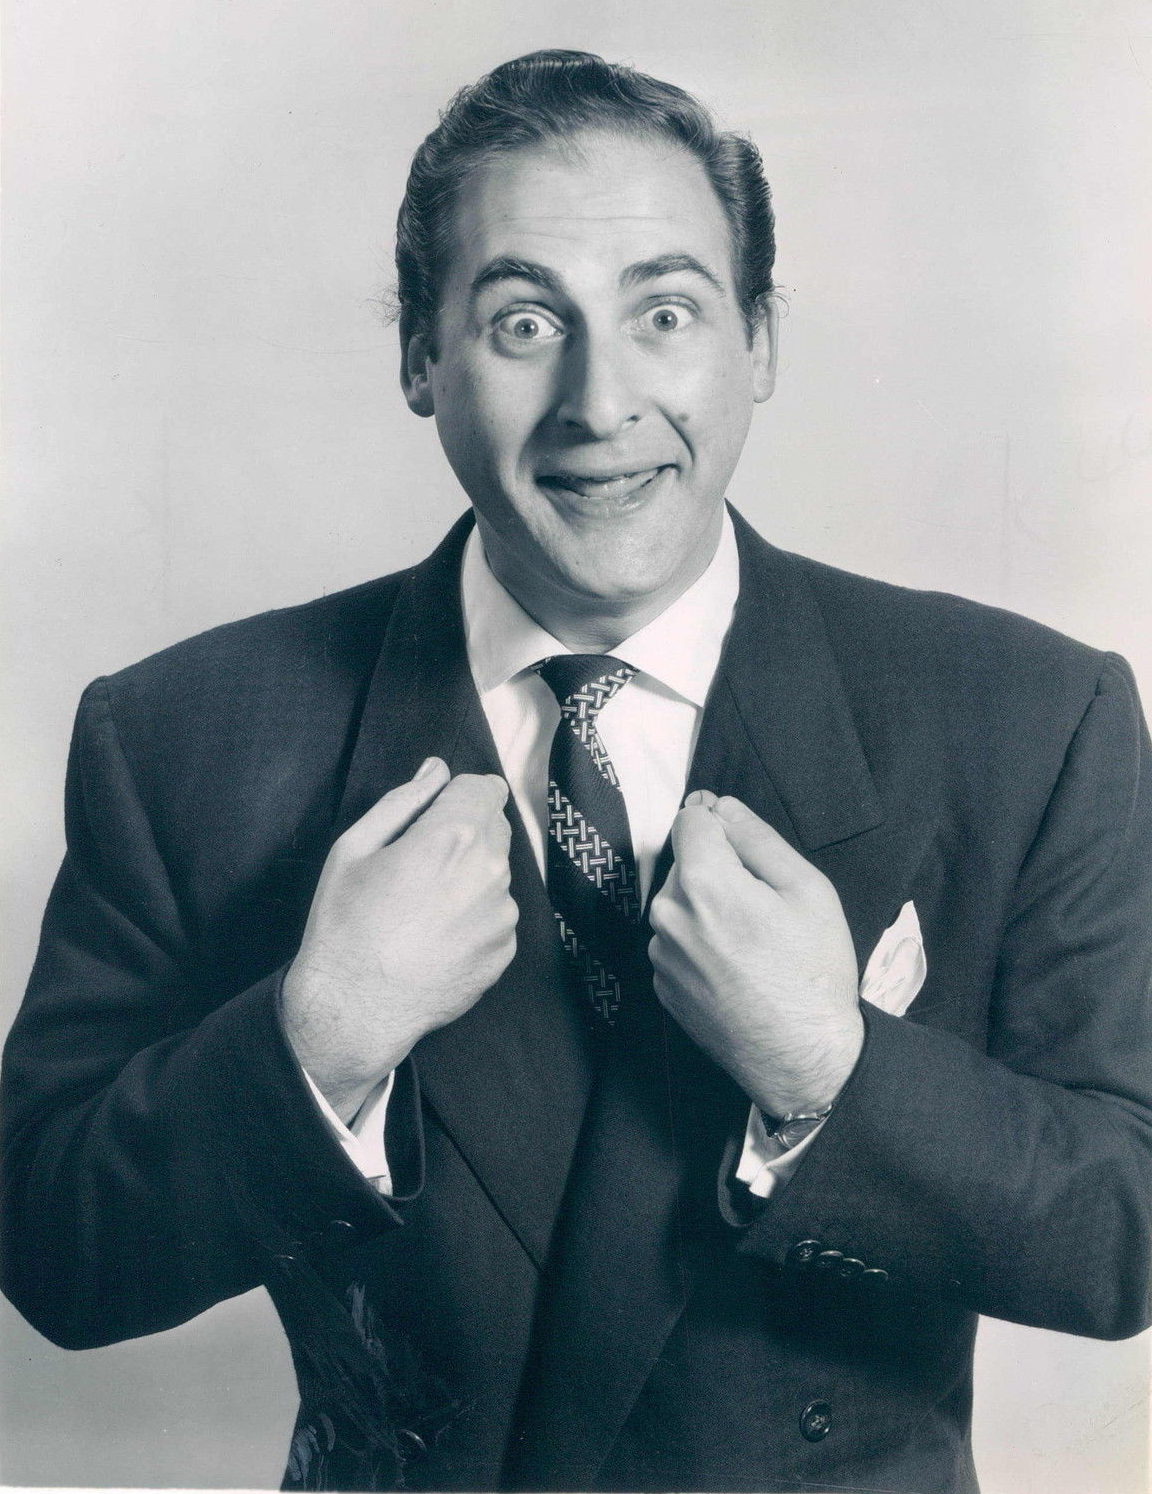 The Brilliance Of Sid Caesar - Five Of His Great Comedy Sketches